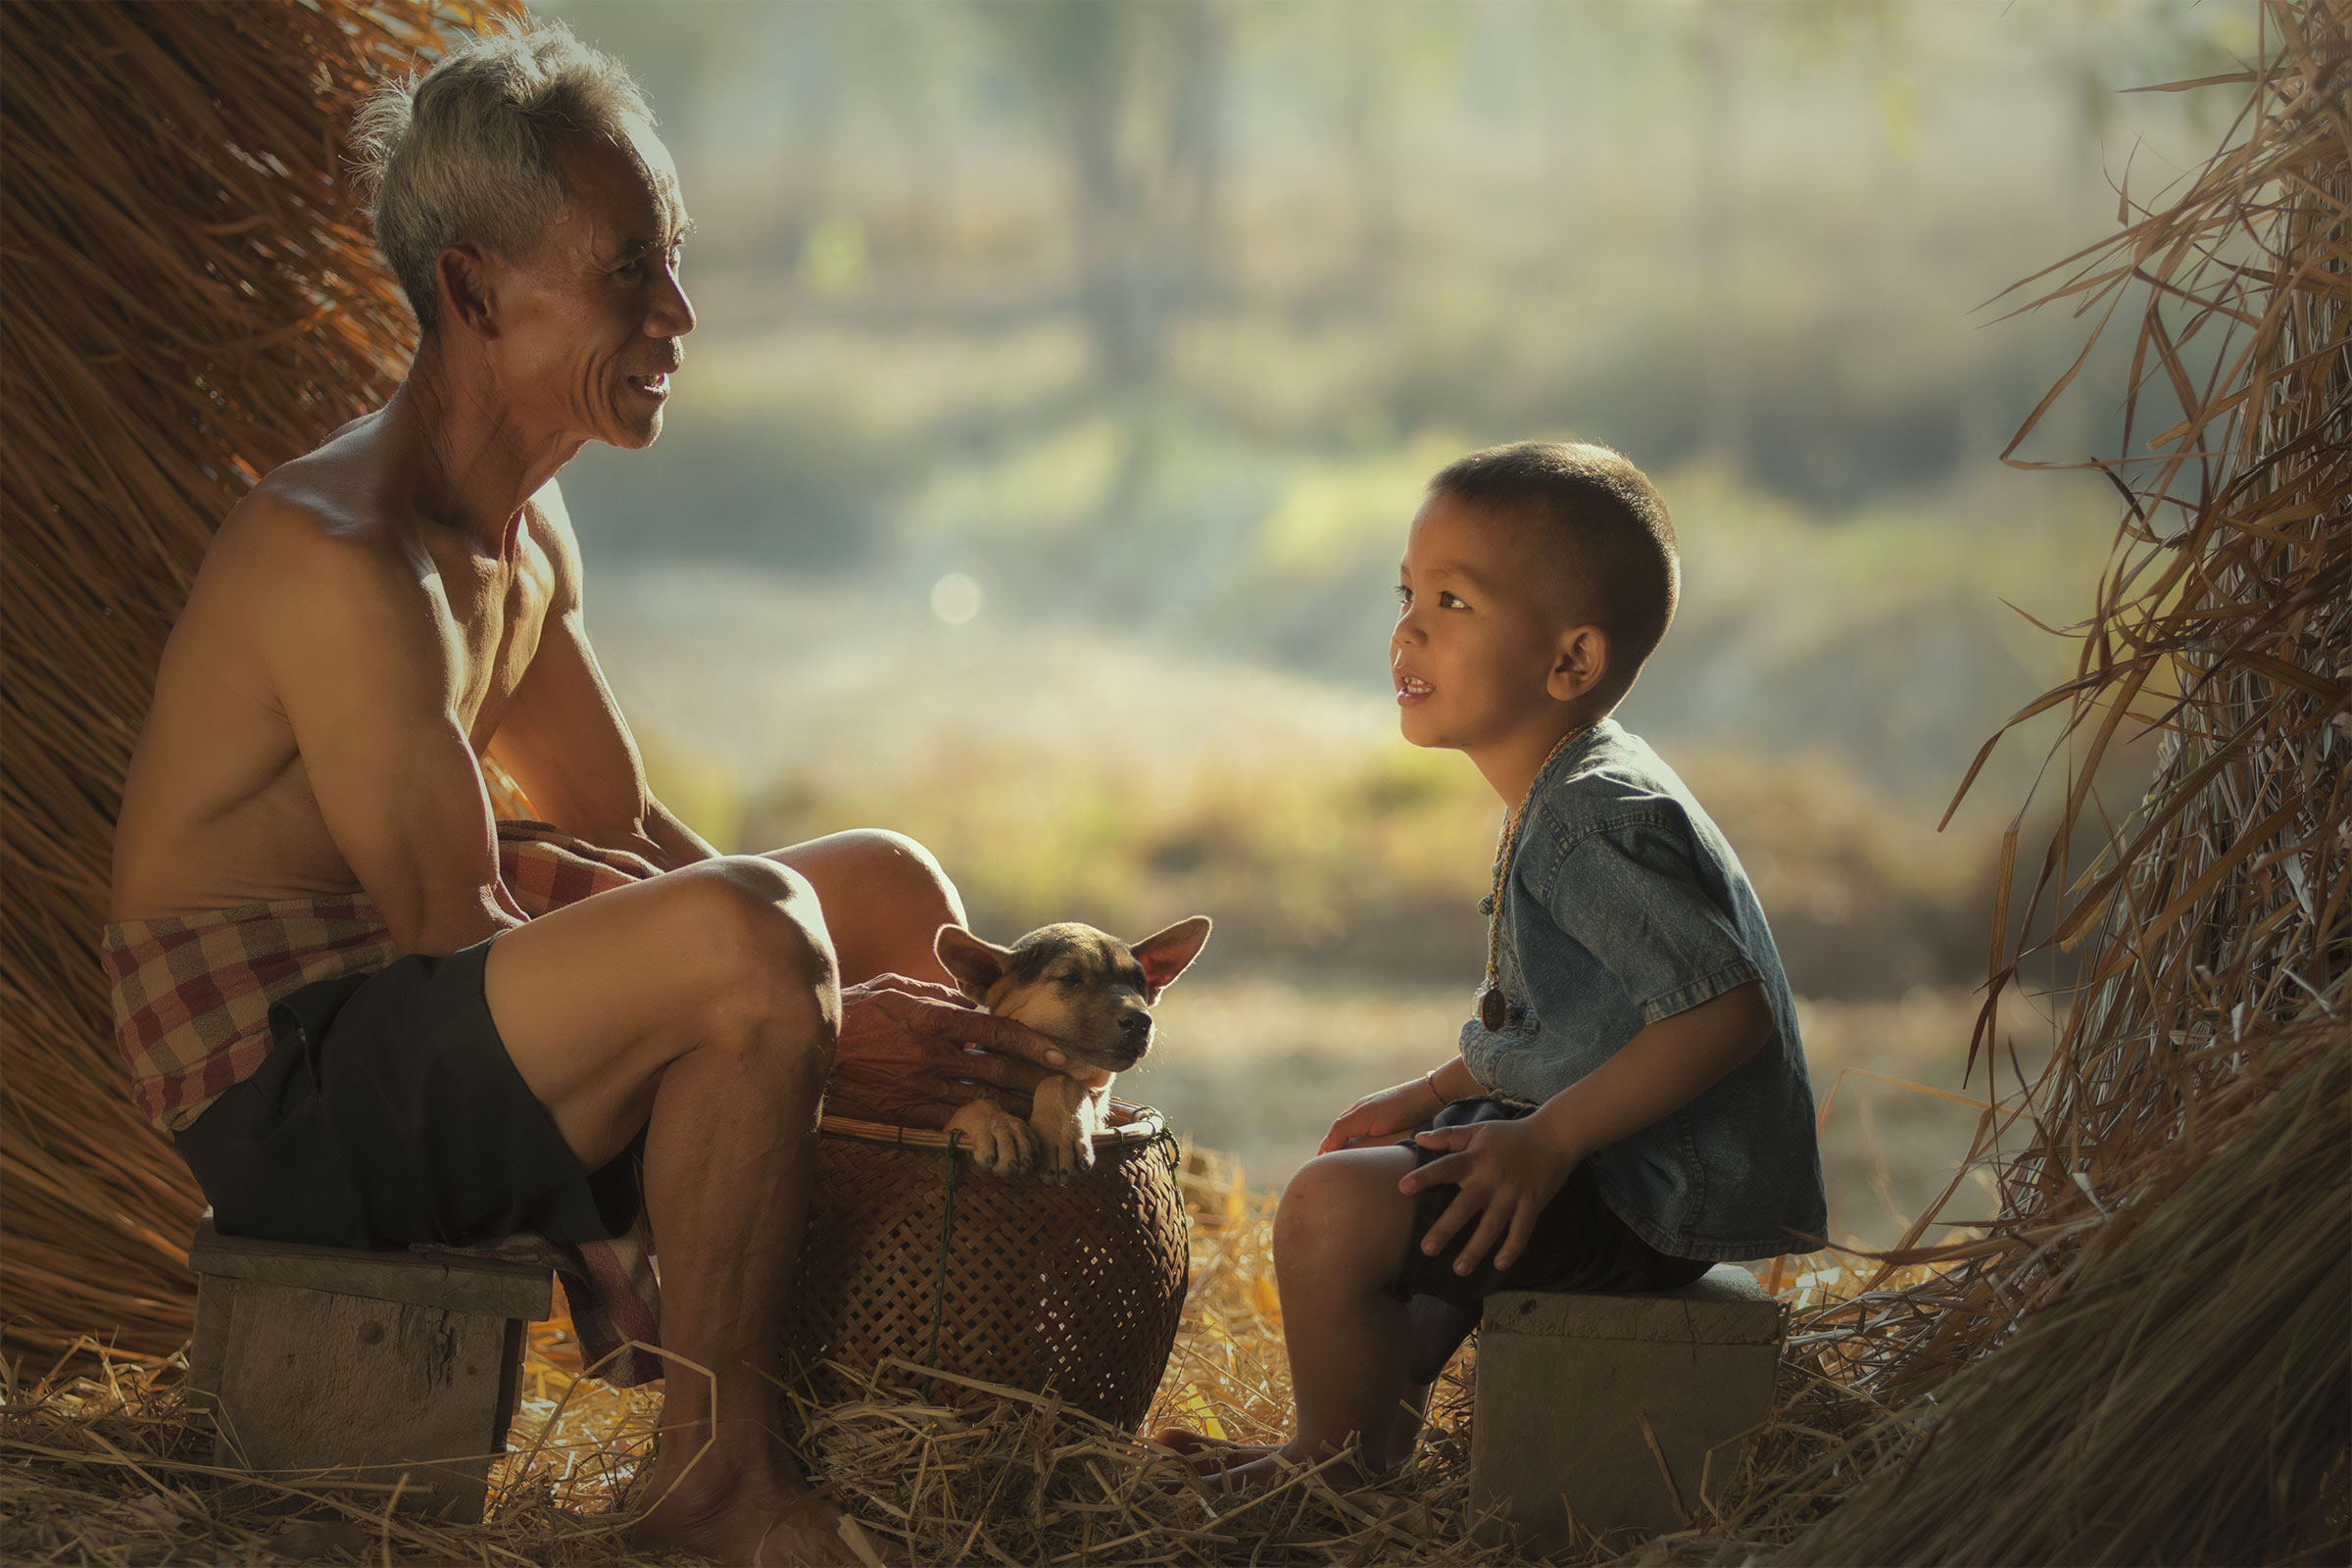 Man sitting talking with young boy